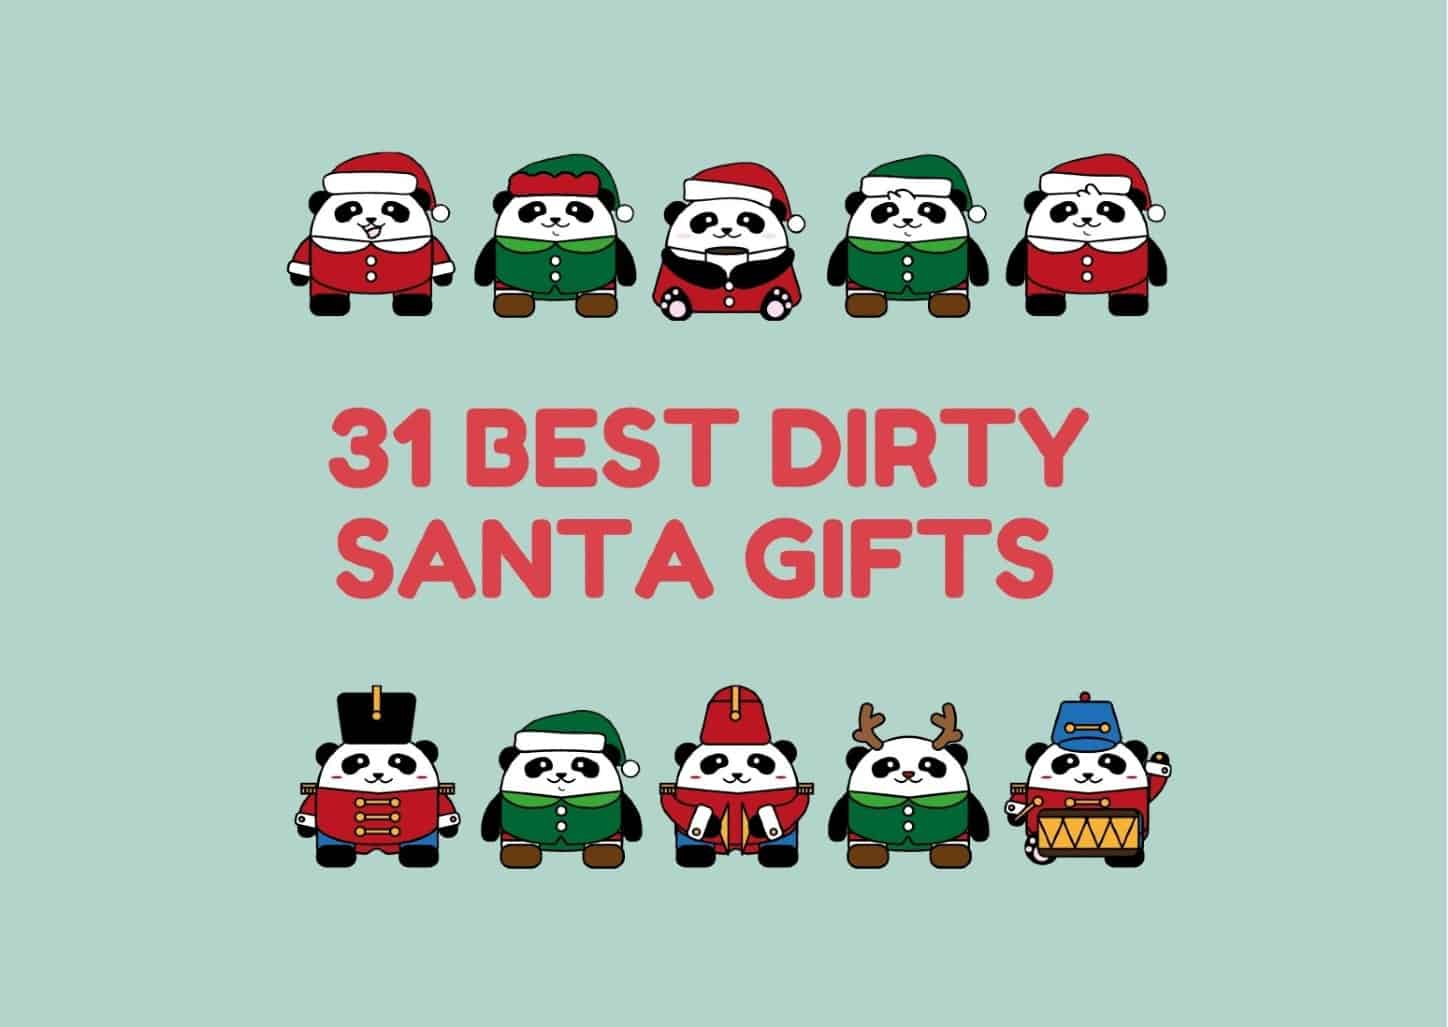 31 Best Dirty Santa Gifts For Christmas 2021